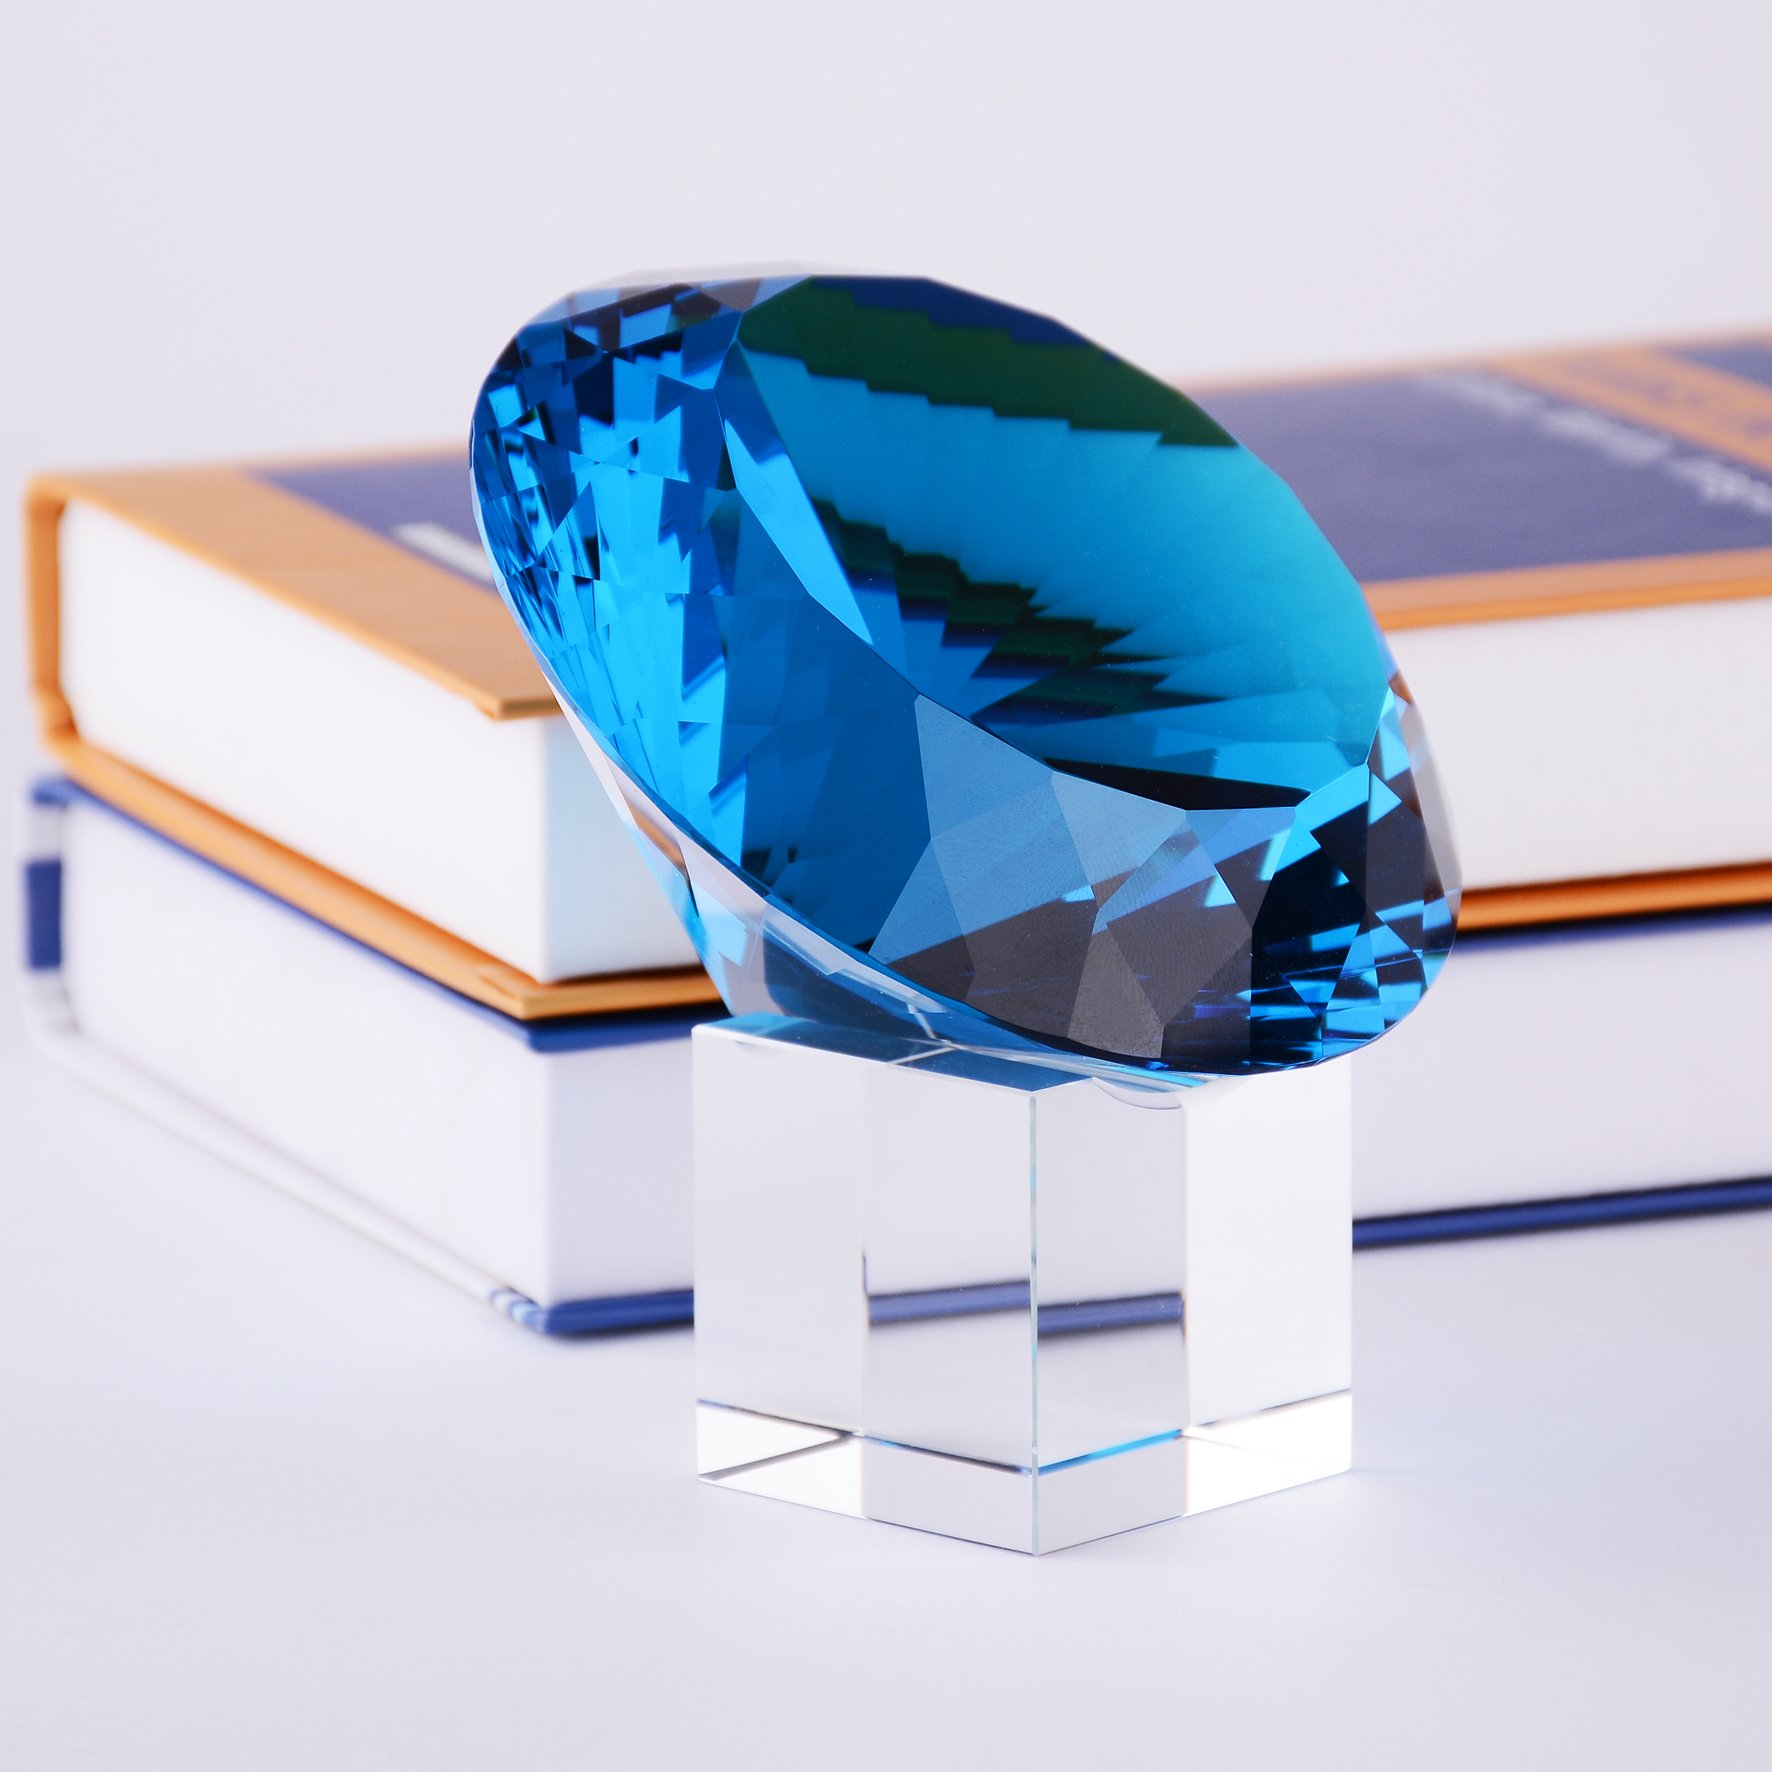 BRLIGHTING Cobalt Blue crystal Diamond Paperweight on stand for Office, Lovely Gift for Friends and Family (D120mm / 4.73'')